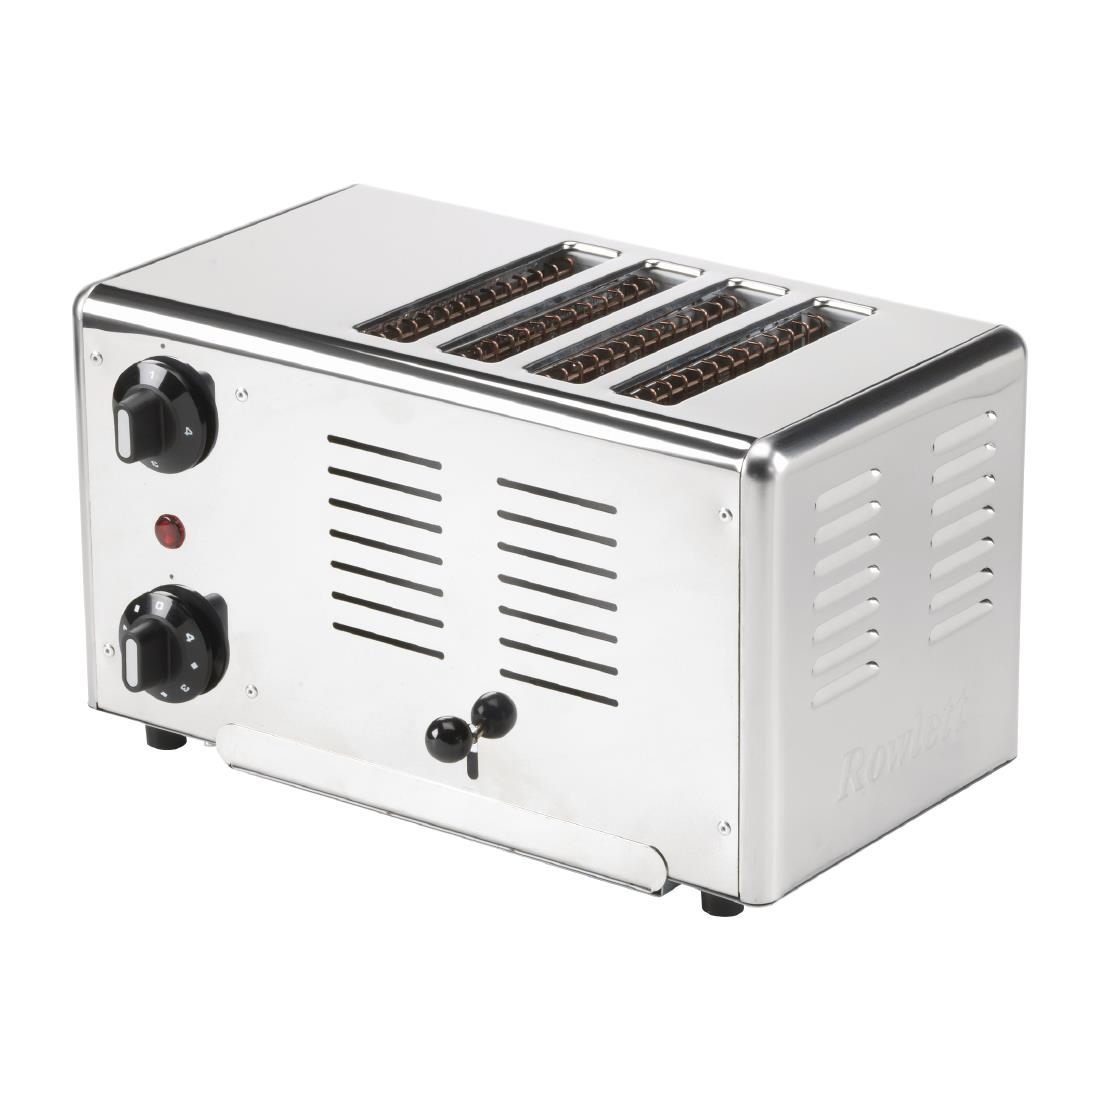 at toaster silver com rsp main signature johnlewis collection lewis cuisinart buycuisinart john pdp online slot